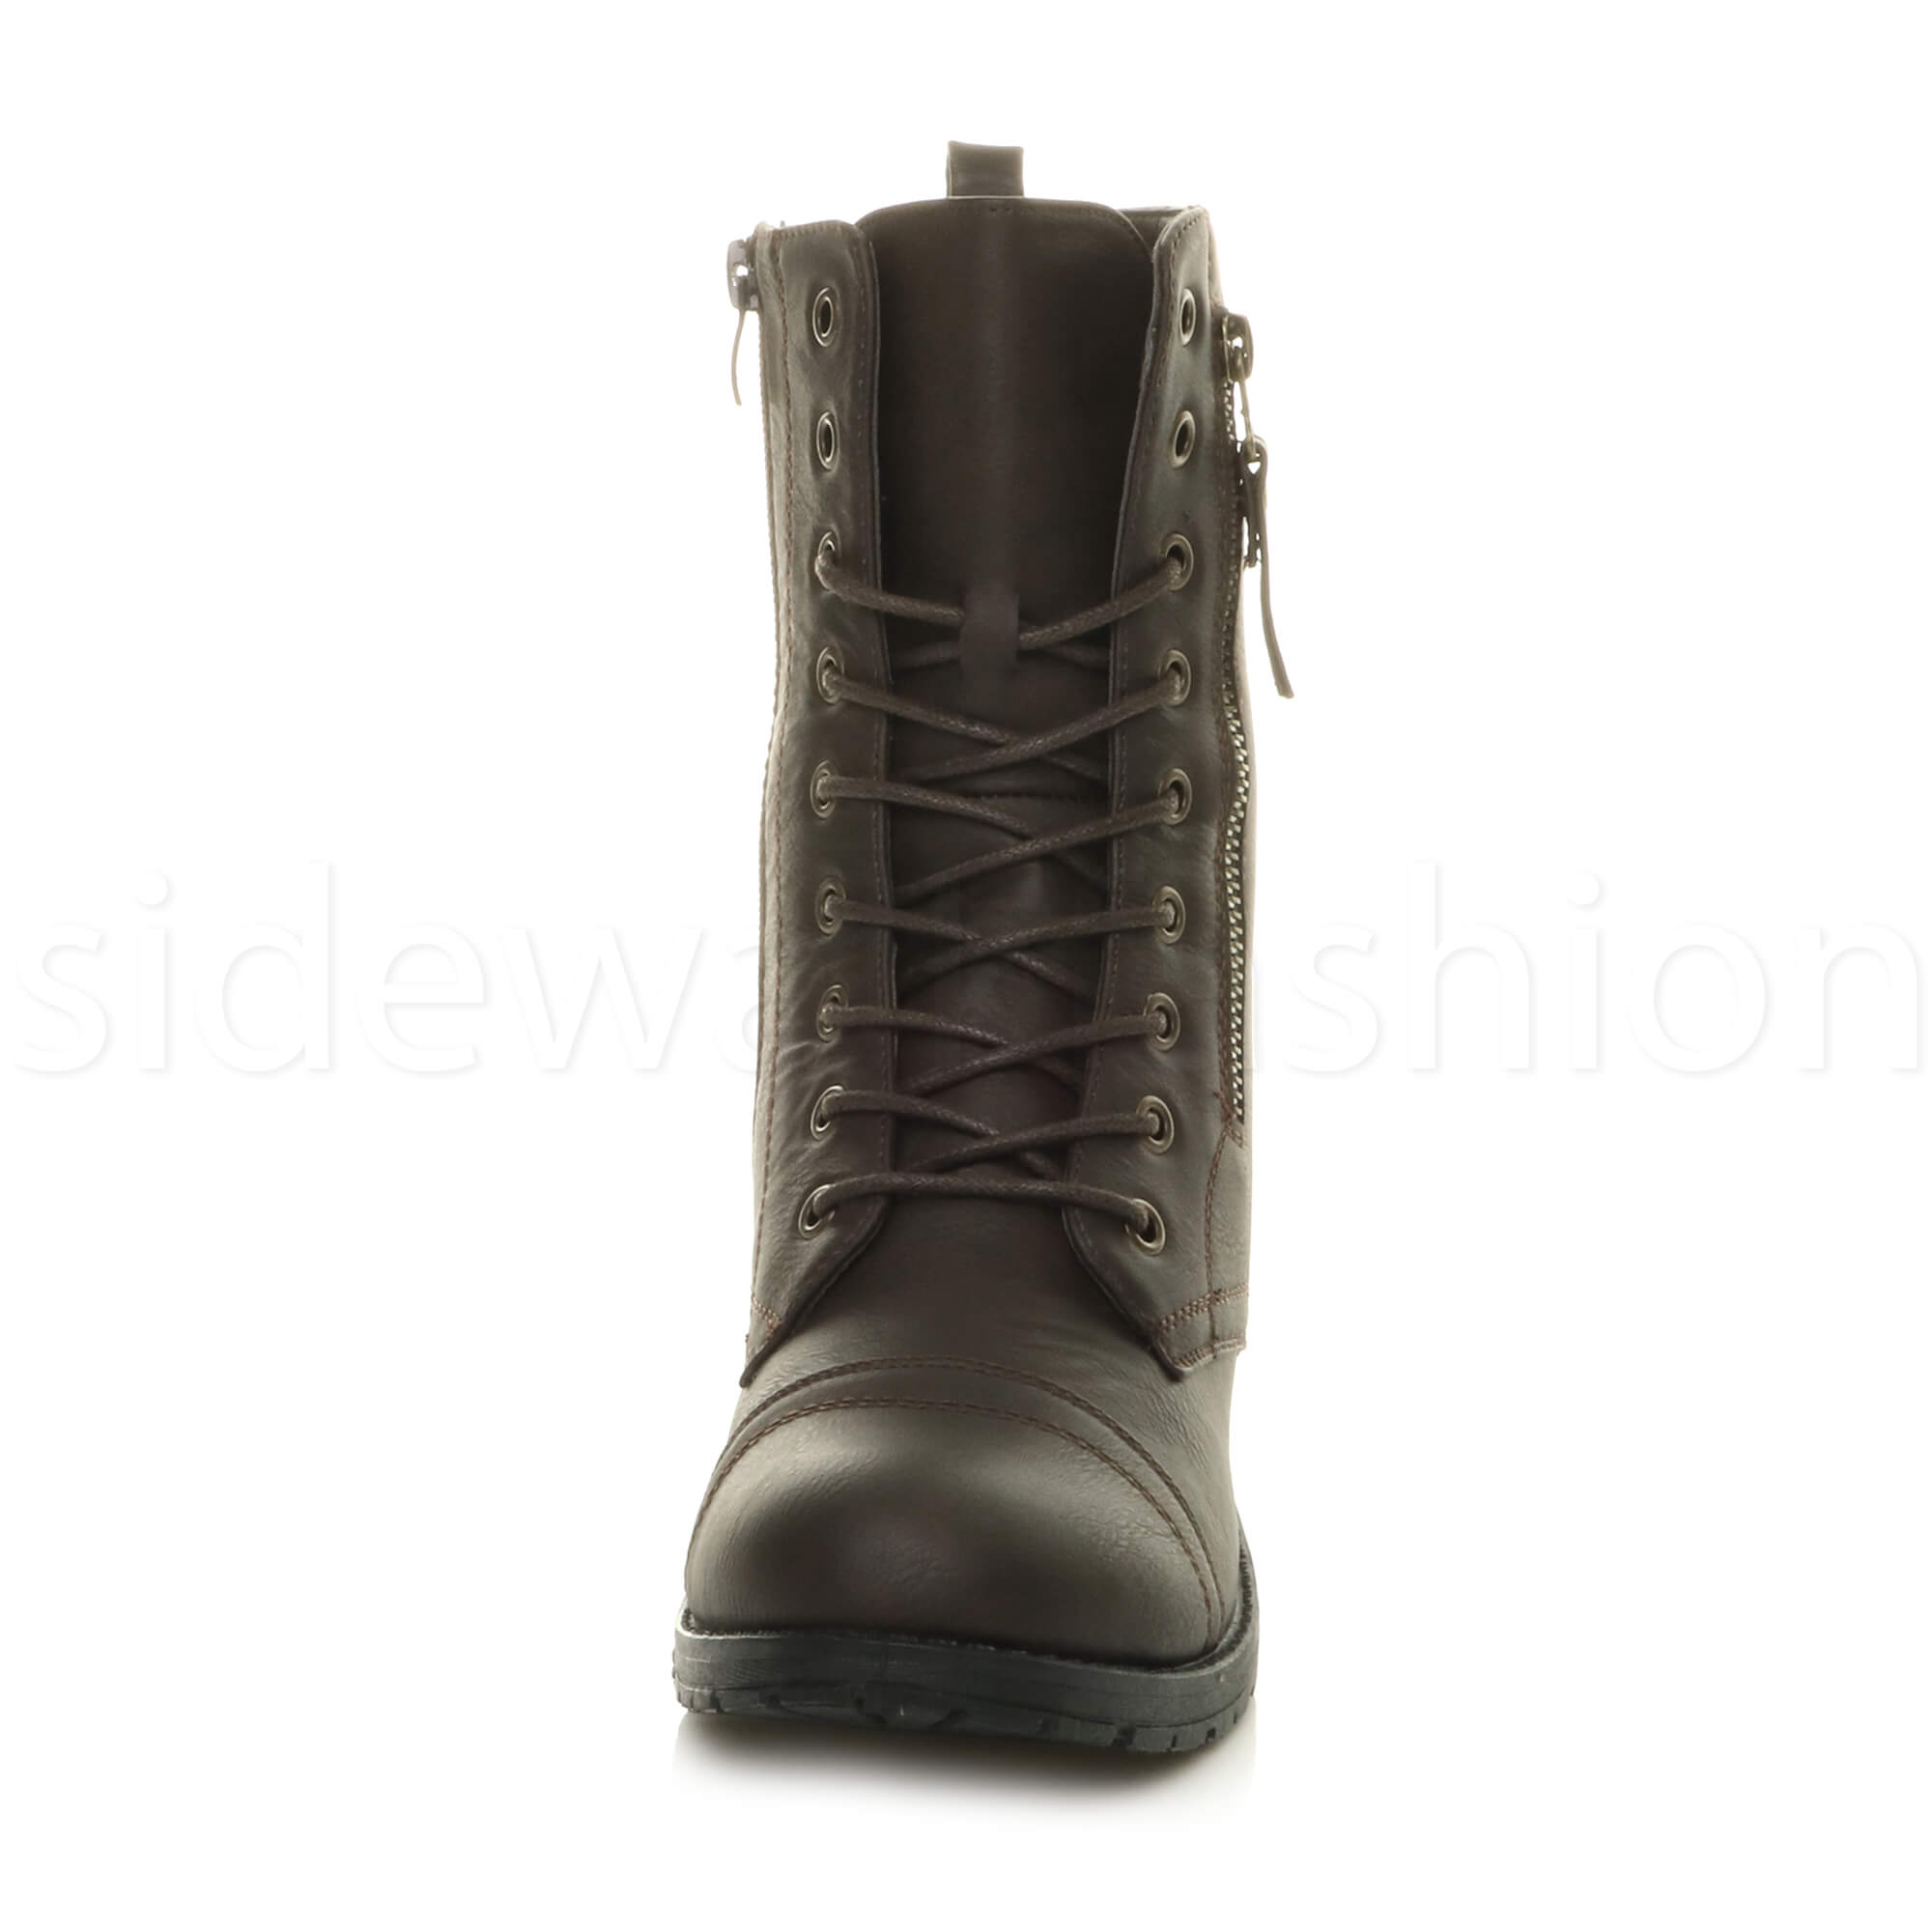 Womens-ladies-low-heel-flat-lace-up-zip-combat-biker-military-ankle-boots-size thumbnail 39